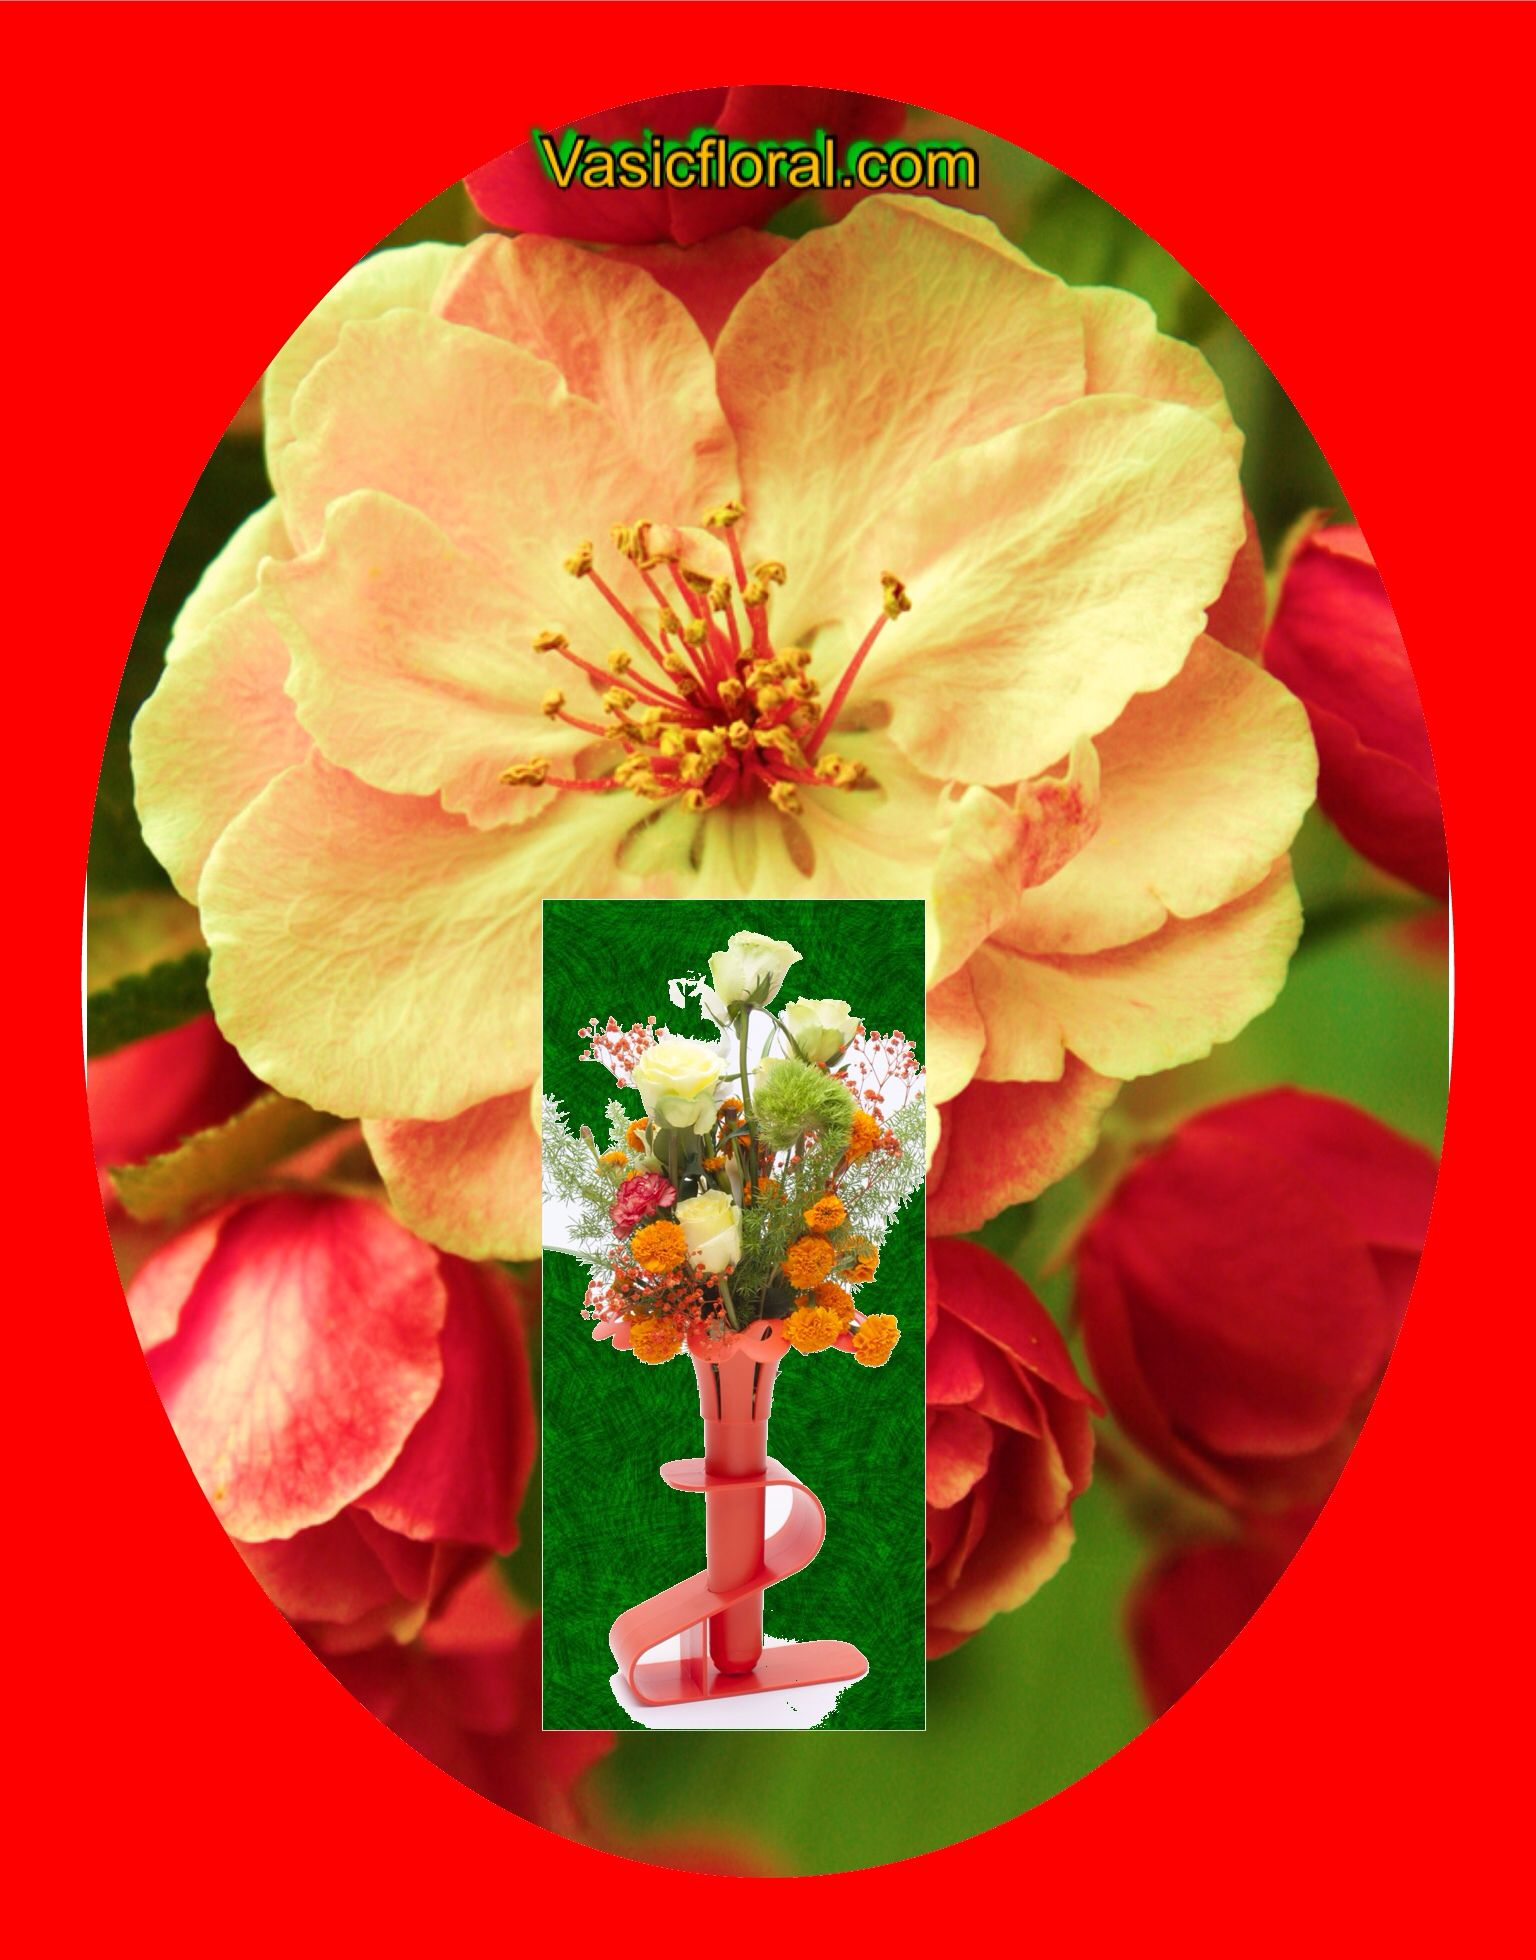 Vasic, For that special touch!#floral #flower #FridayReads #FridayFunday. #FlashbackFriday